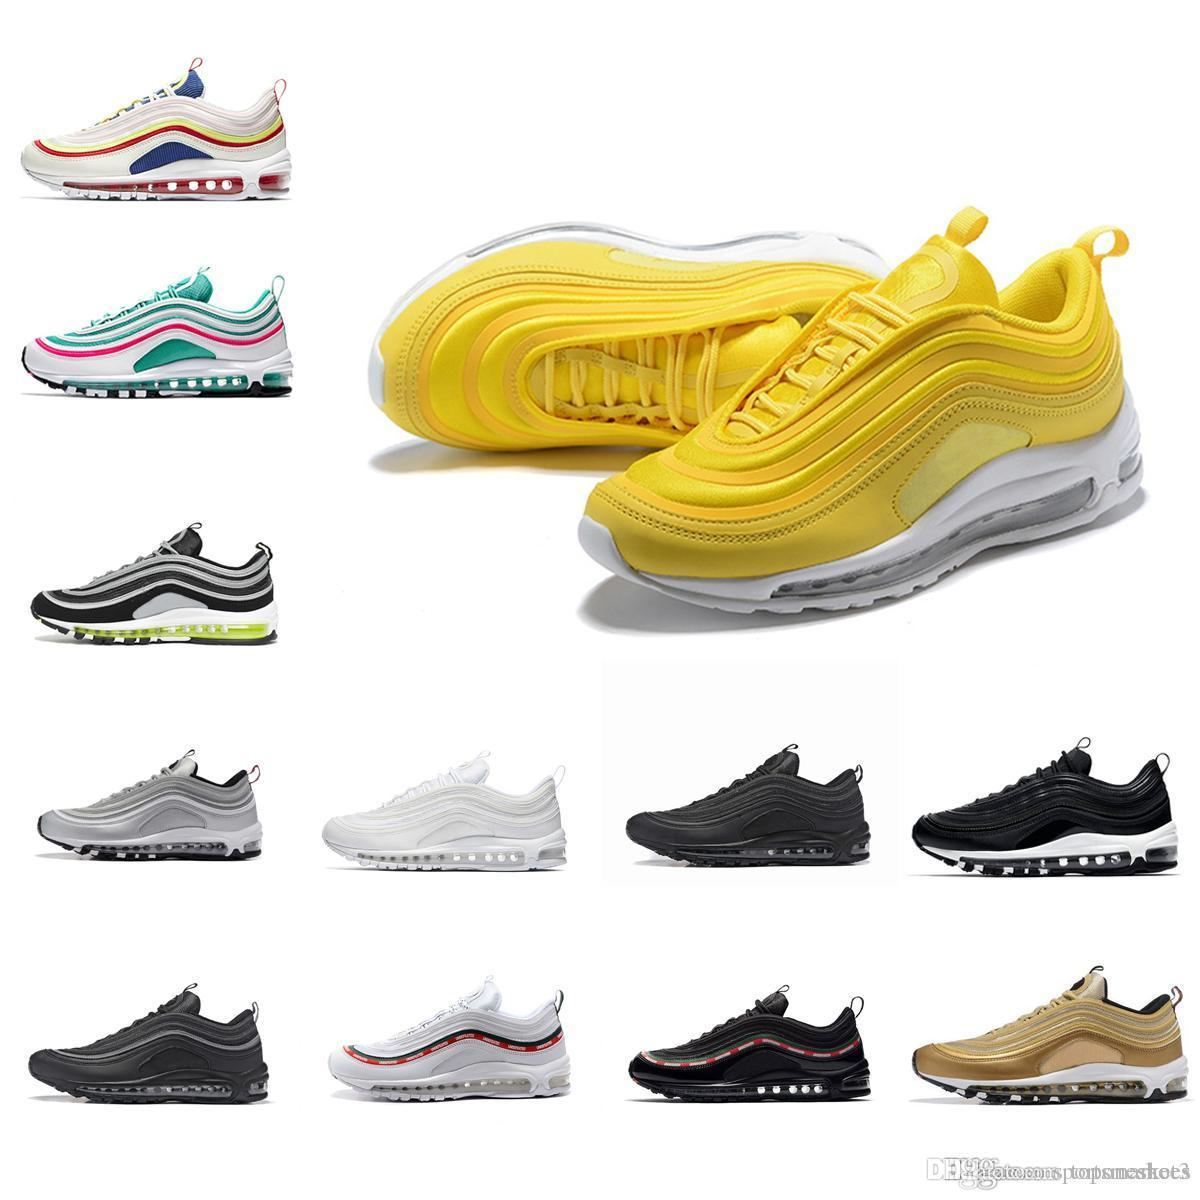 9a6d296cff4 2018 South Beach Gym Red Yellow 97 Casual Shoes Undftd Triple White ...